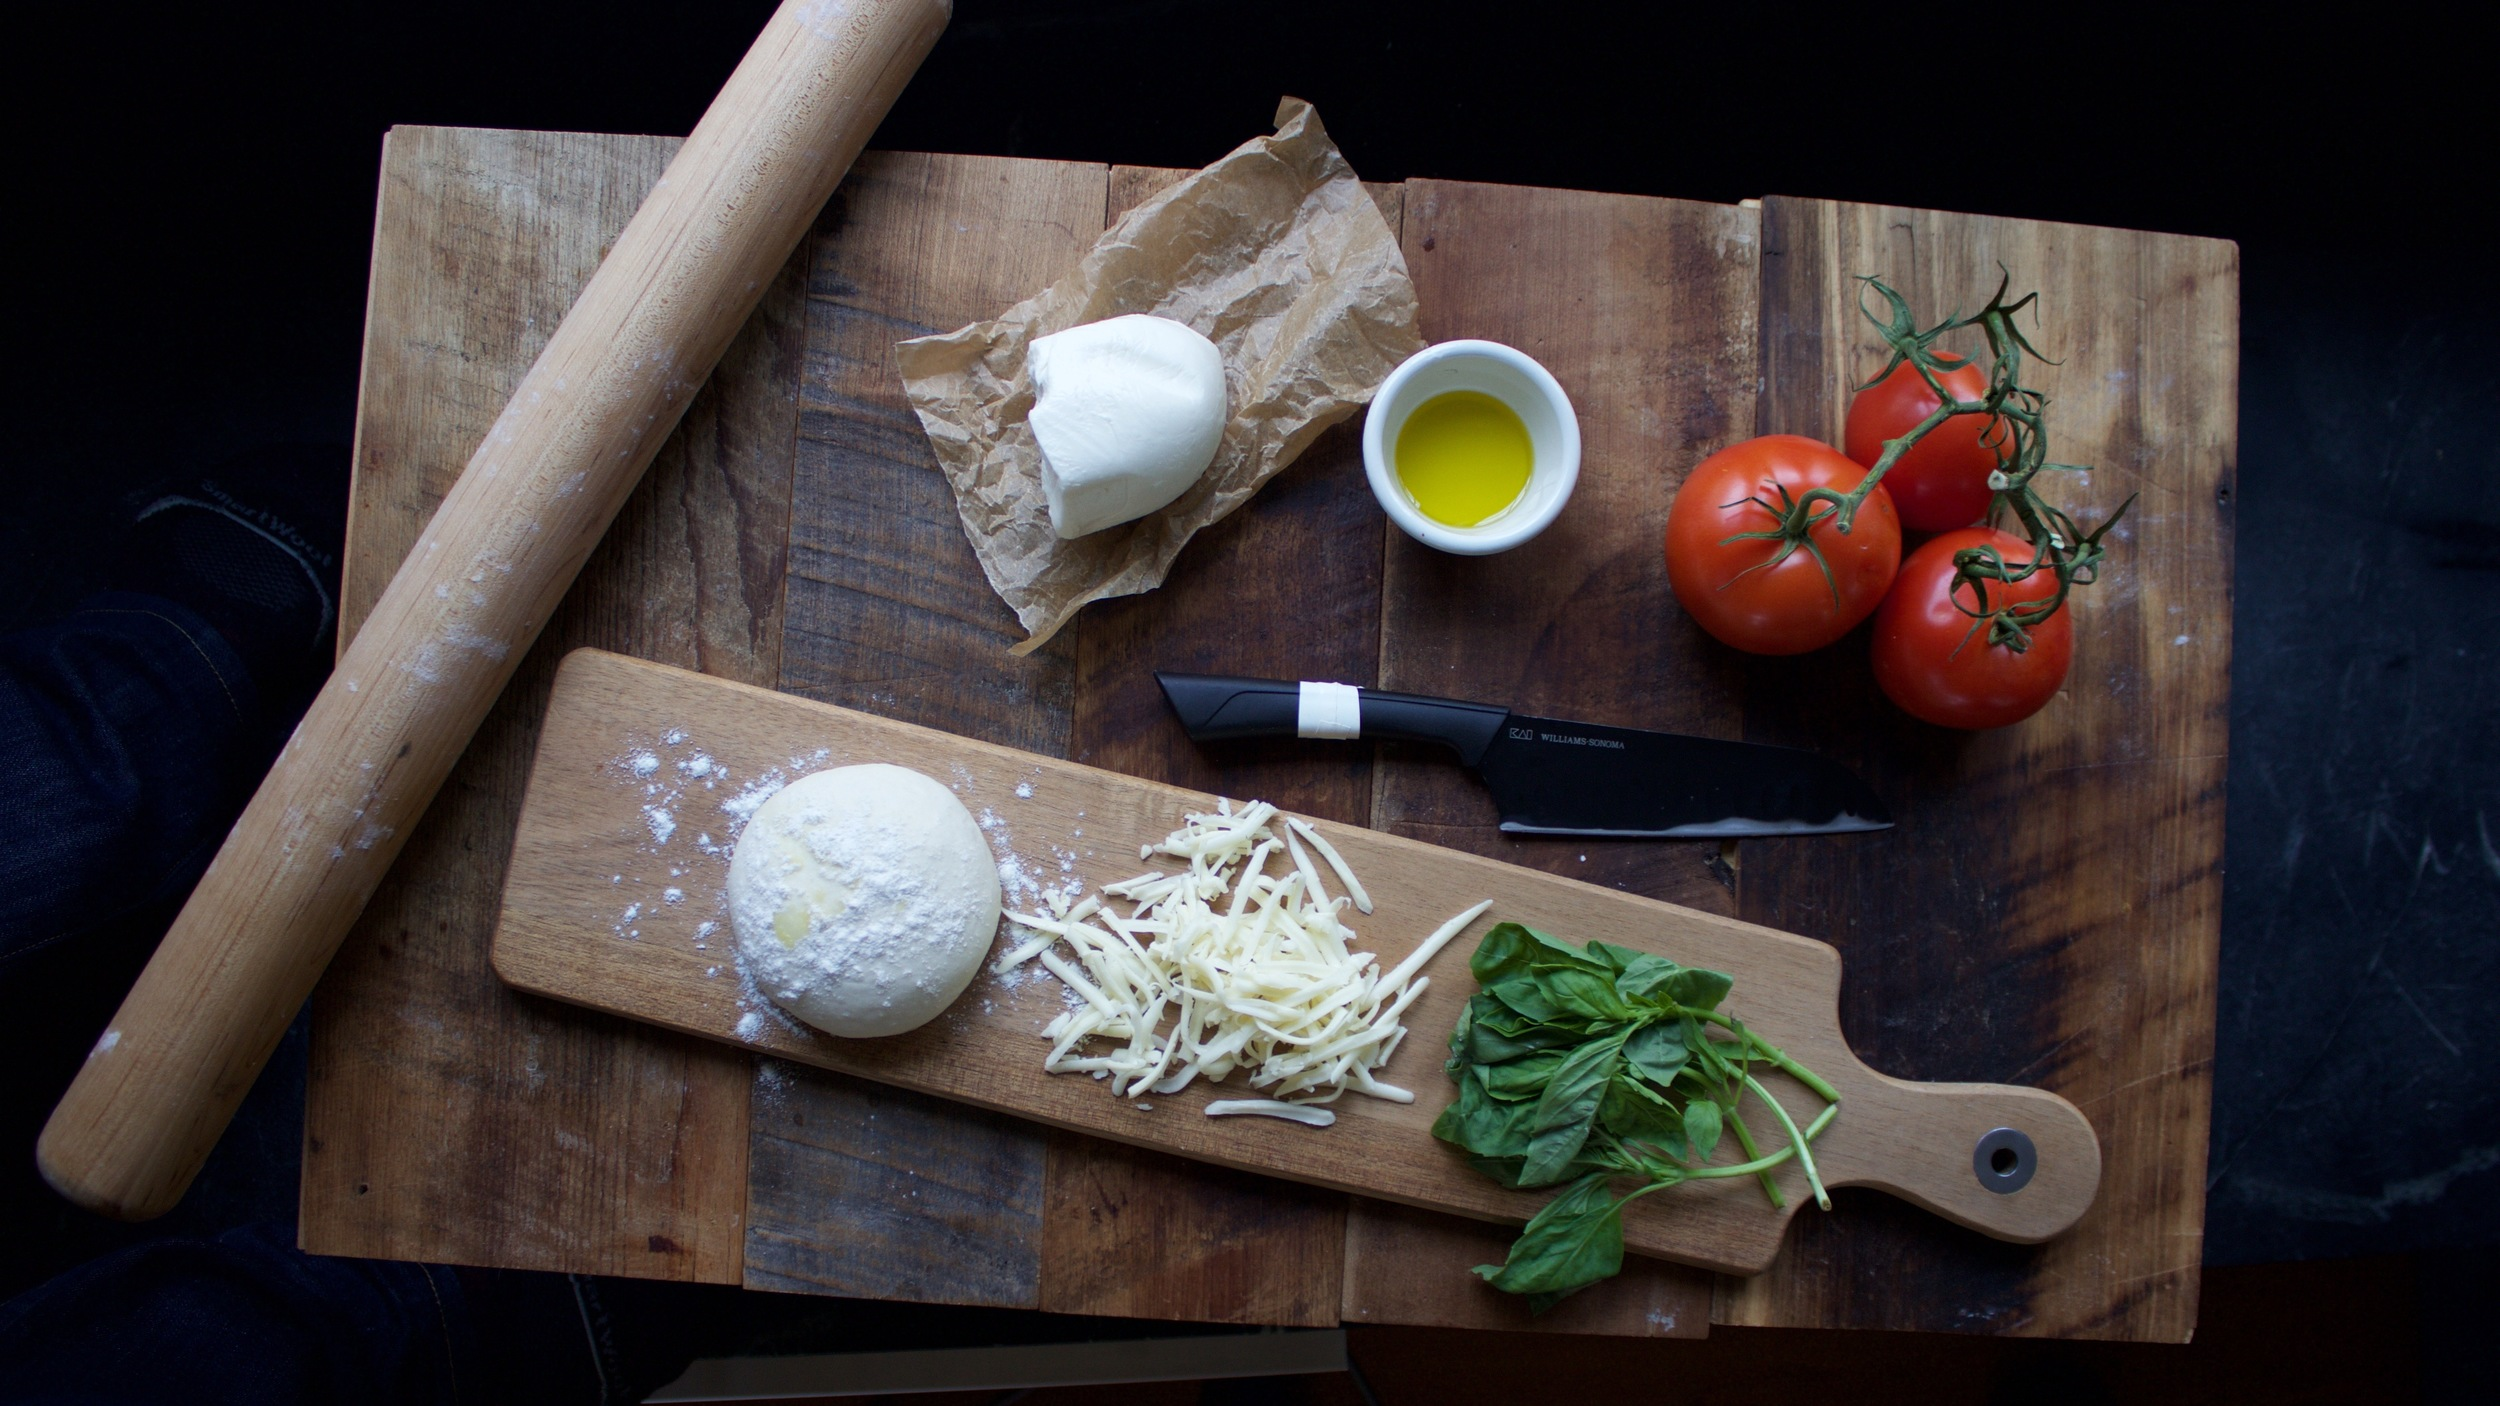 mis en place for thin crust pizza